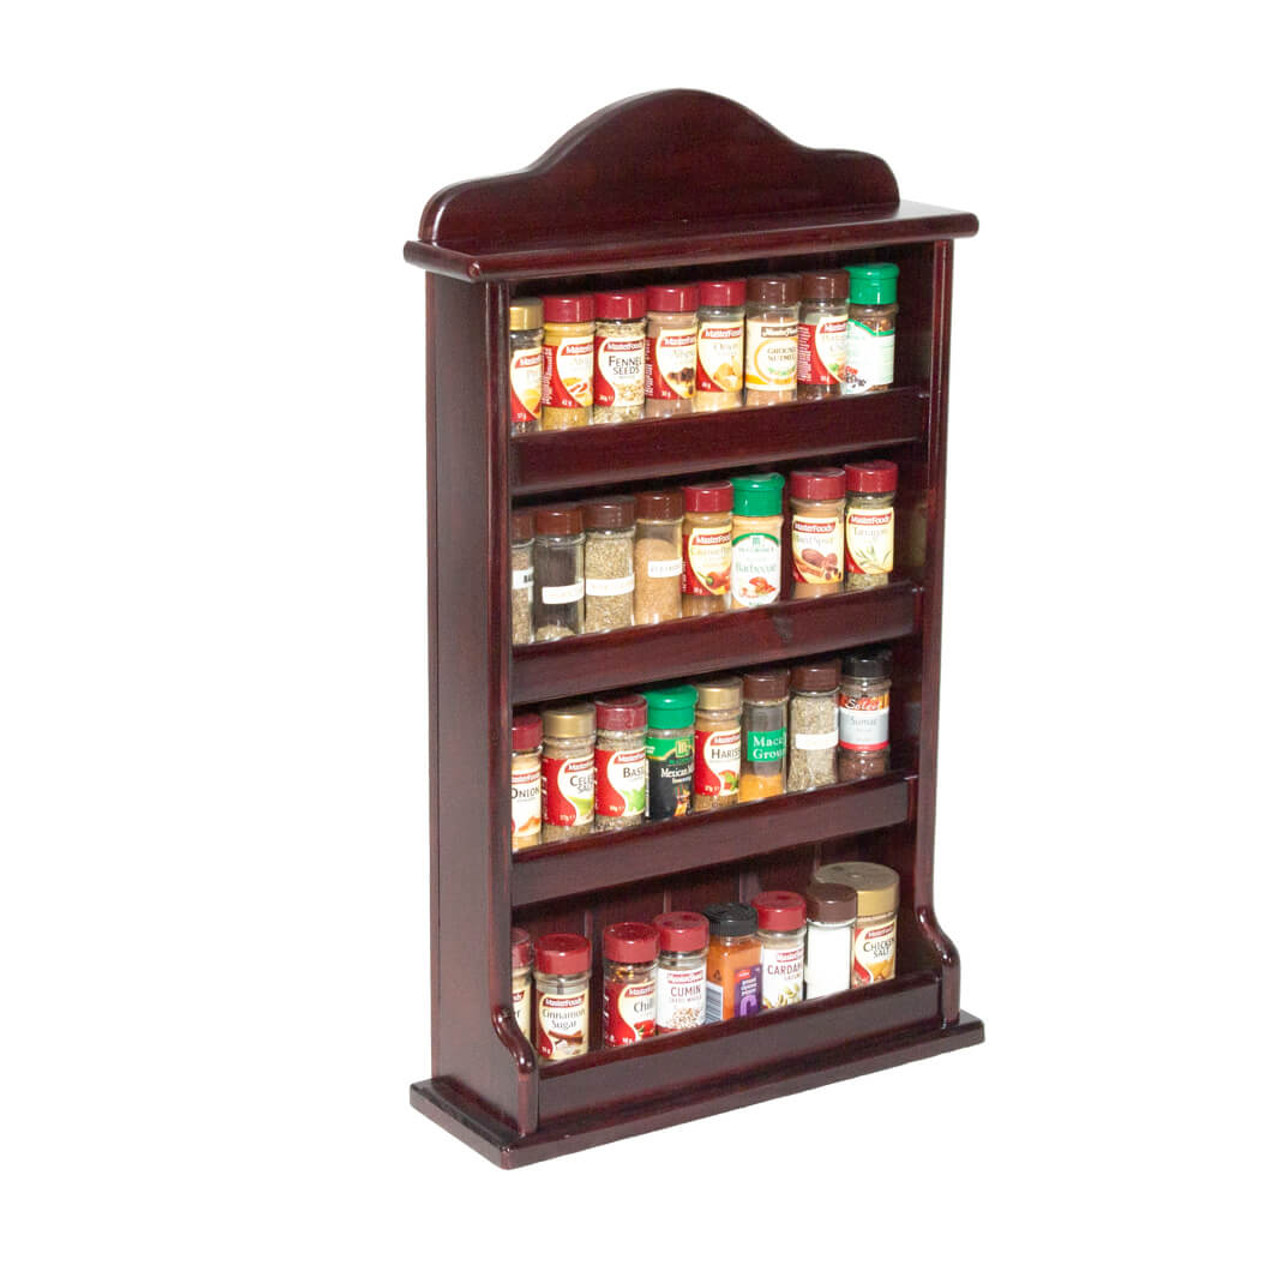 spice rack wooden crown 4 tiers solid timber fence 32 spice jars